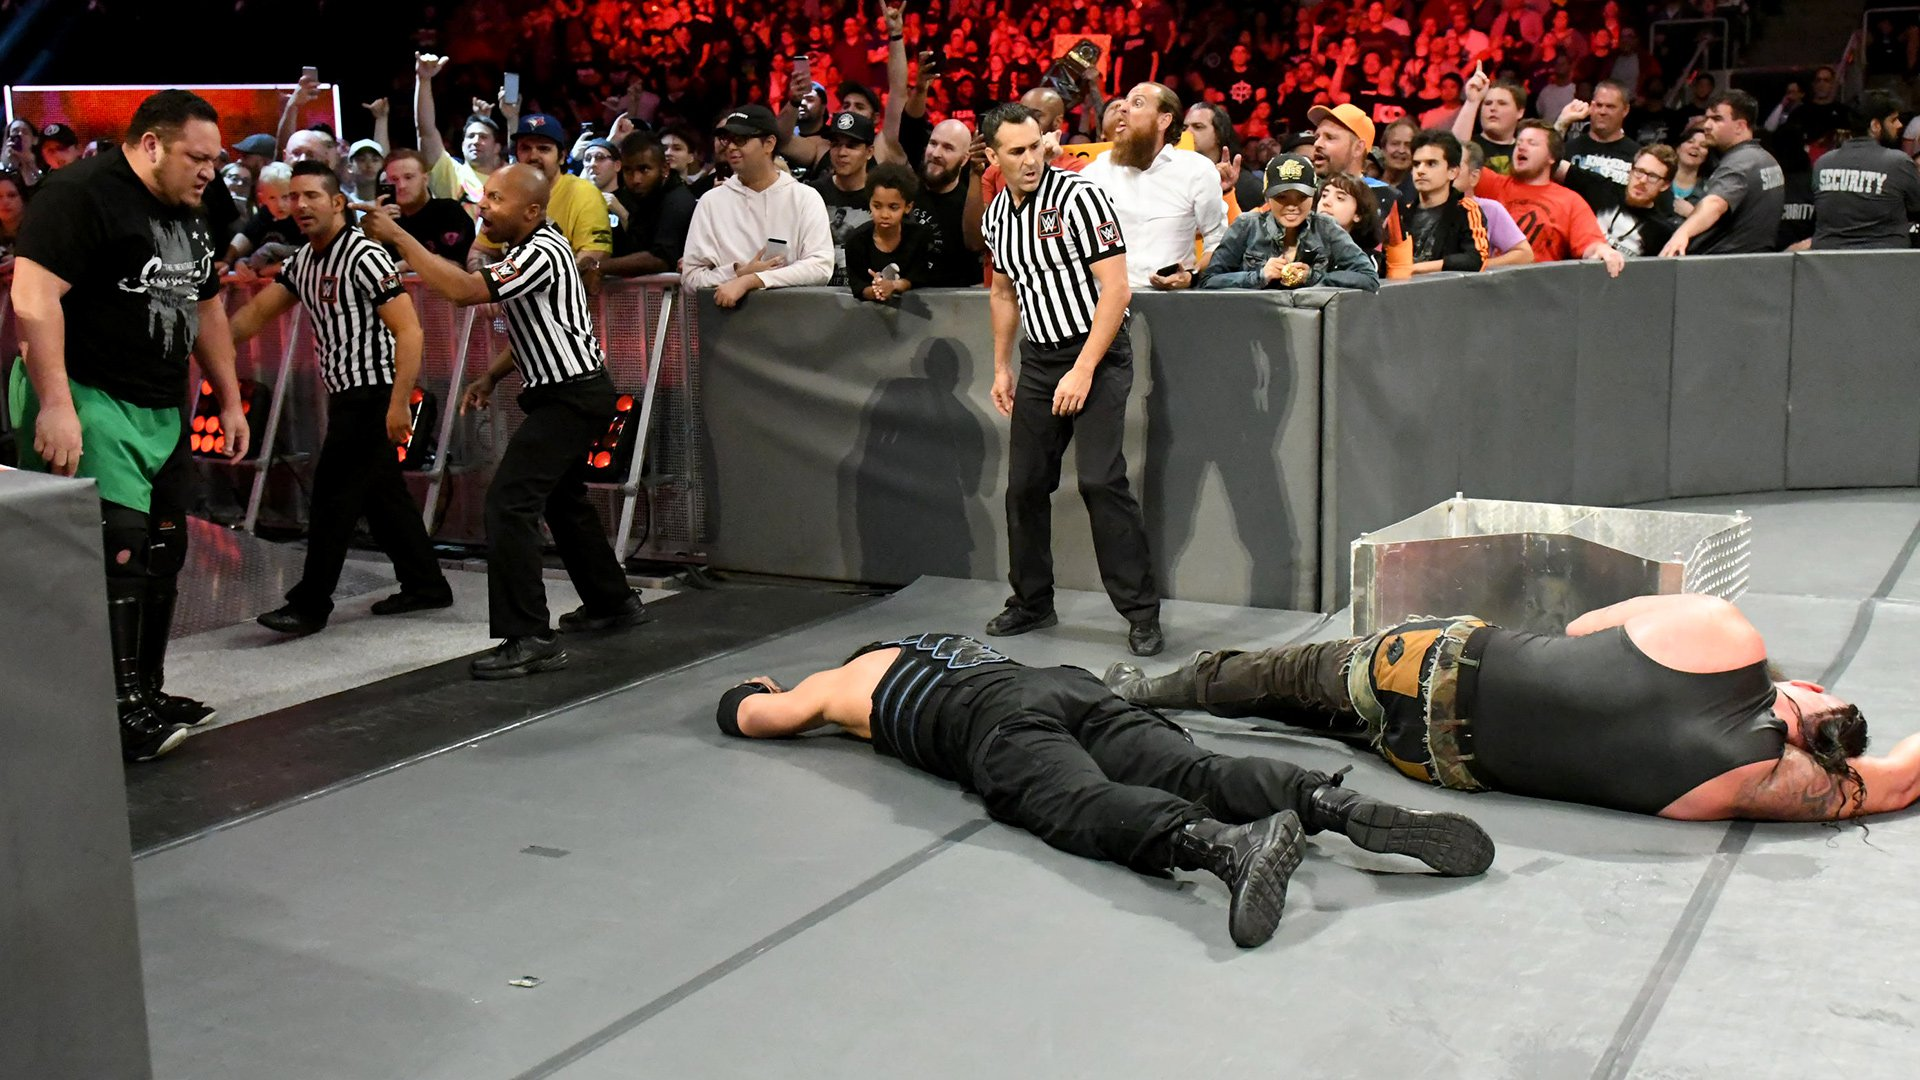 Strowman would get to his feet at the count of eight to claim the victory...